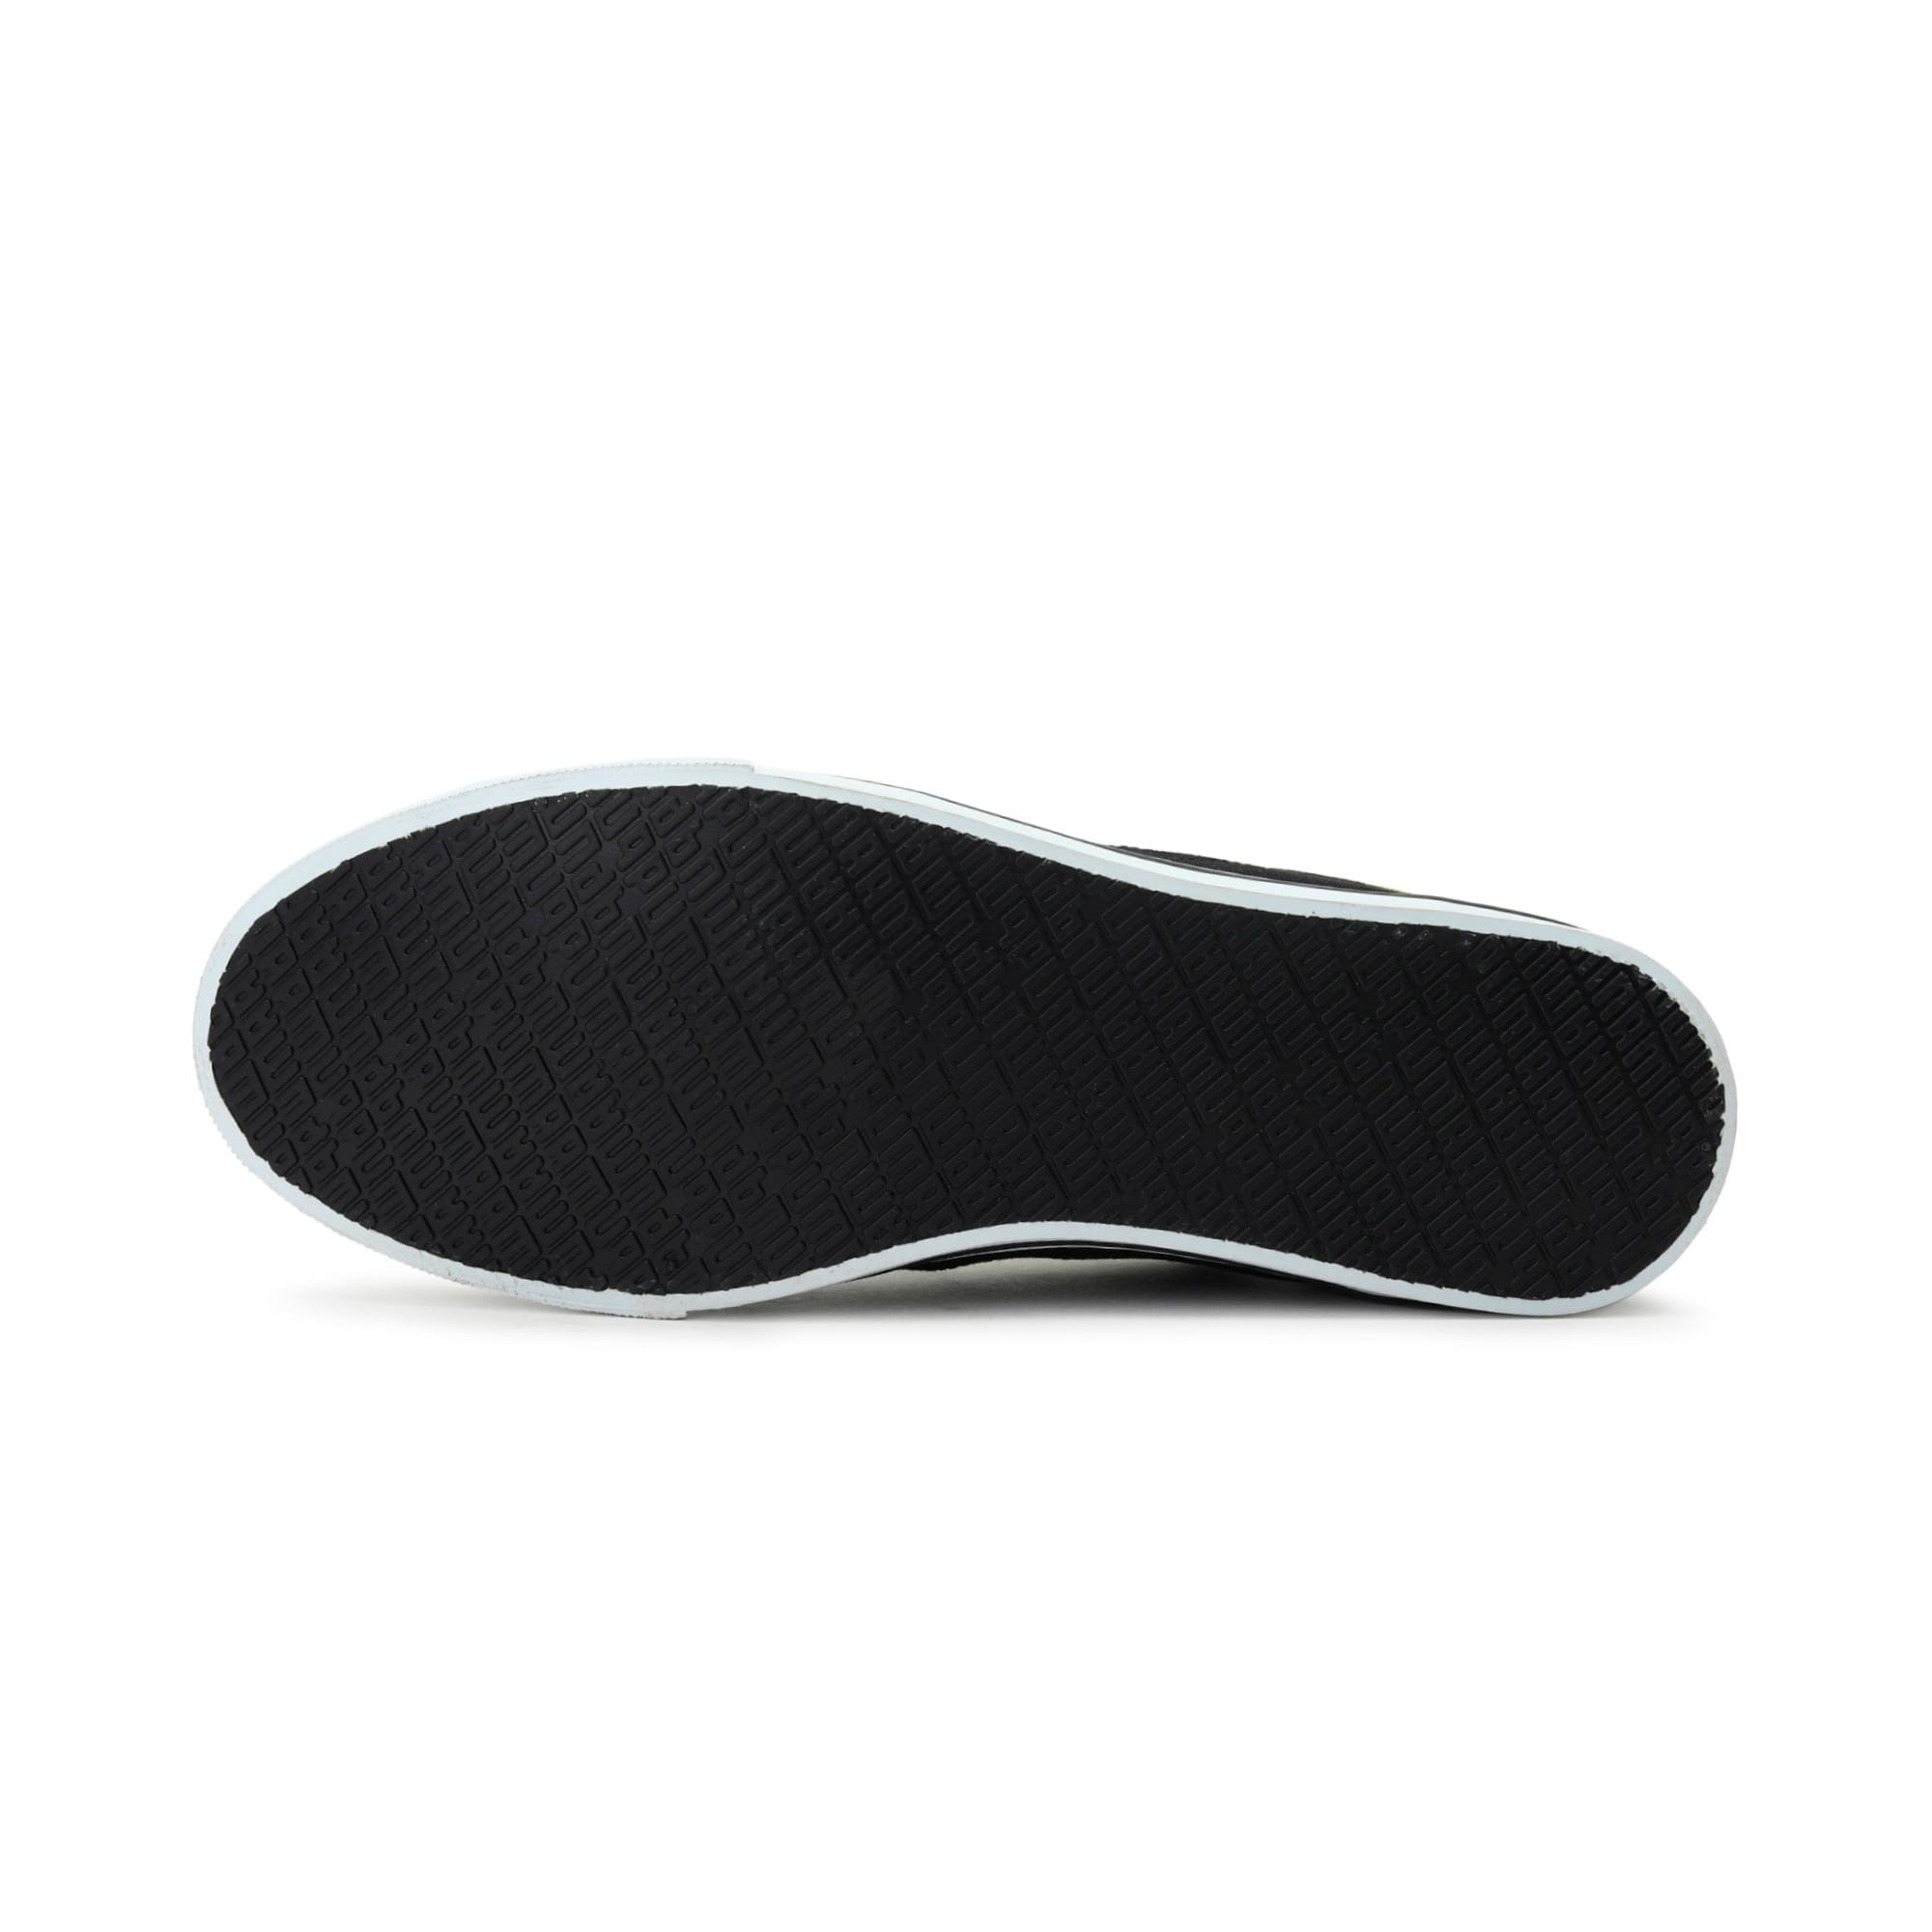 Thumbnail 3 of Puma Streetballer DP, Black-Puma White-Limepunch, medium-IND